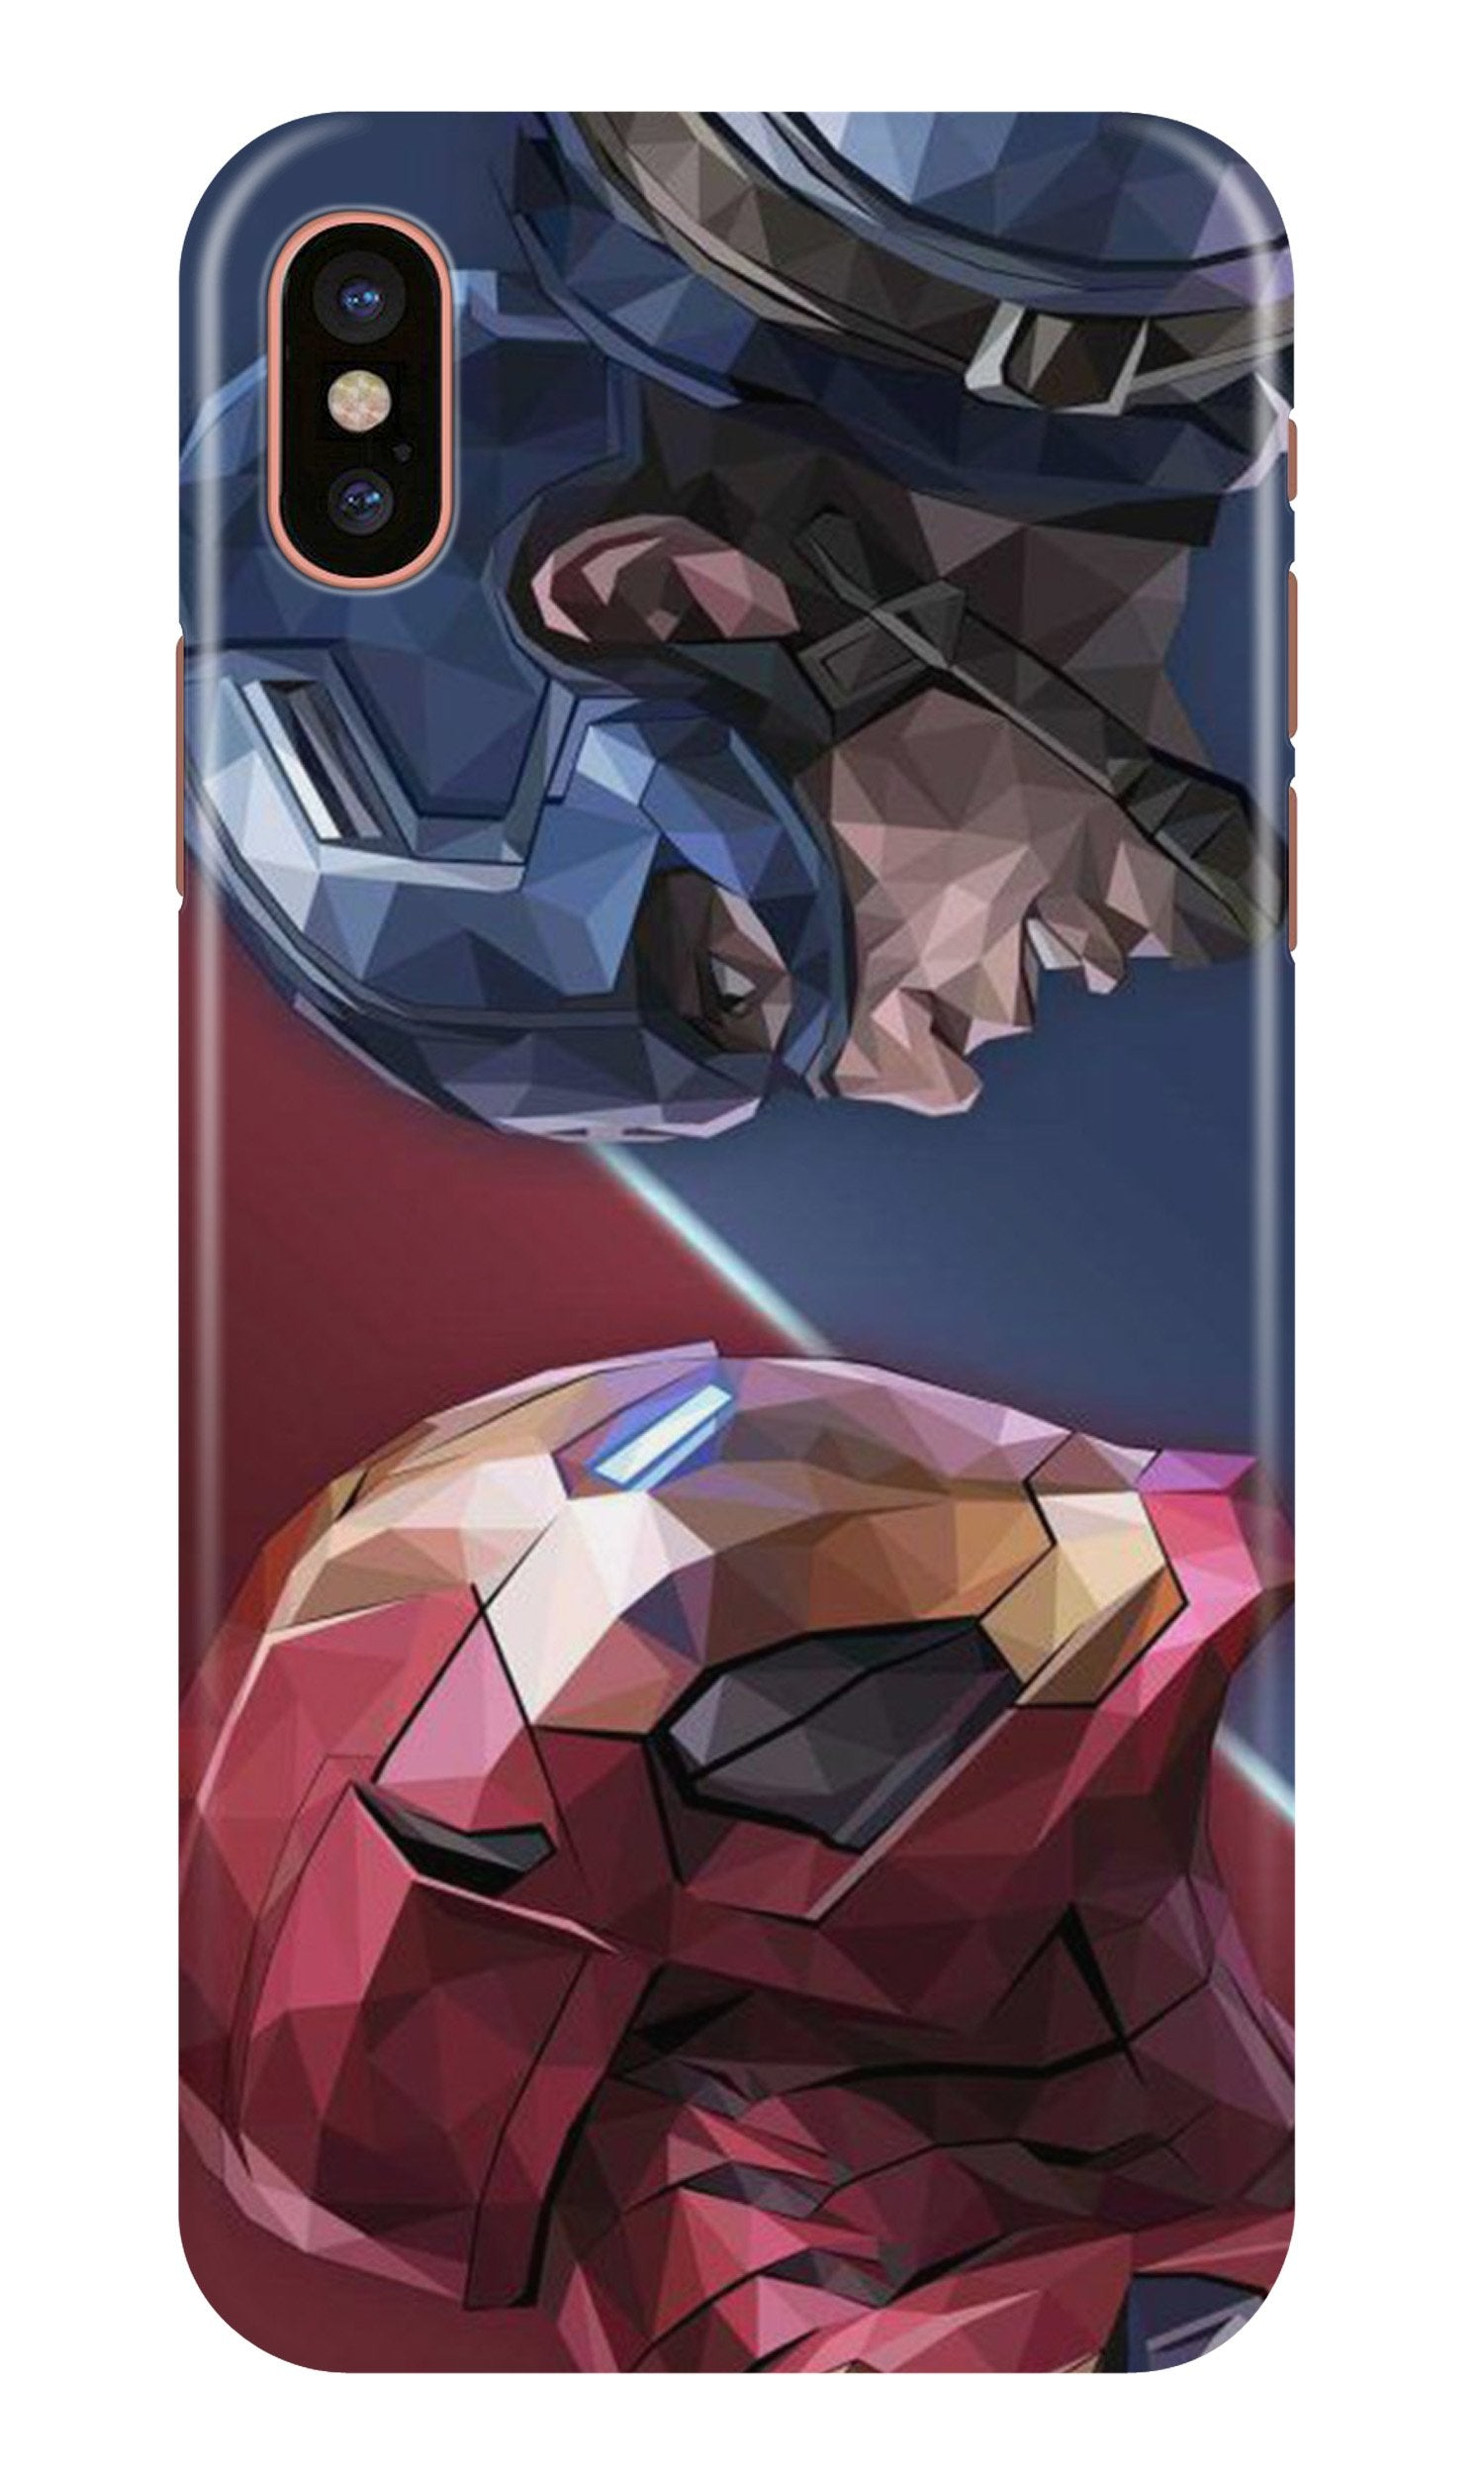 Ironman Captain America Case for iPhone Xr (Design No. 245)